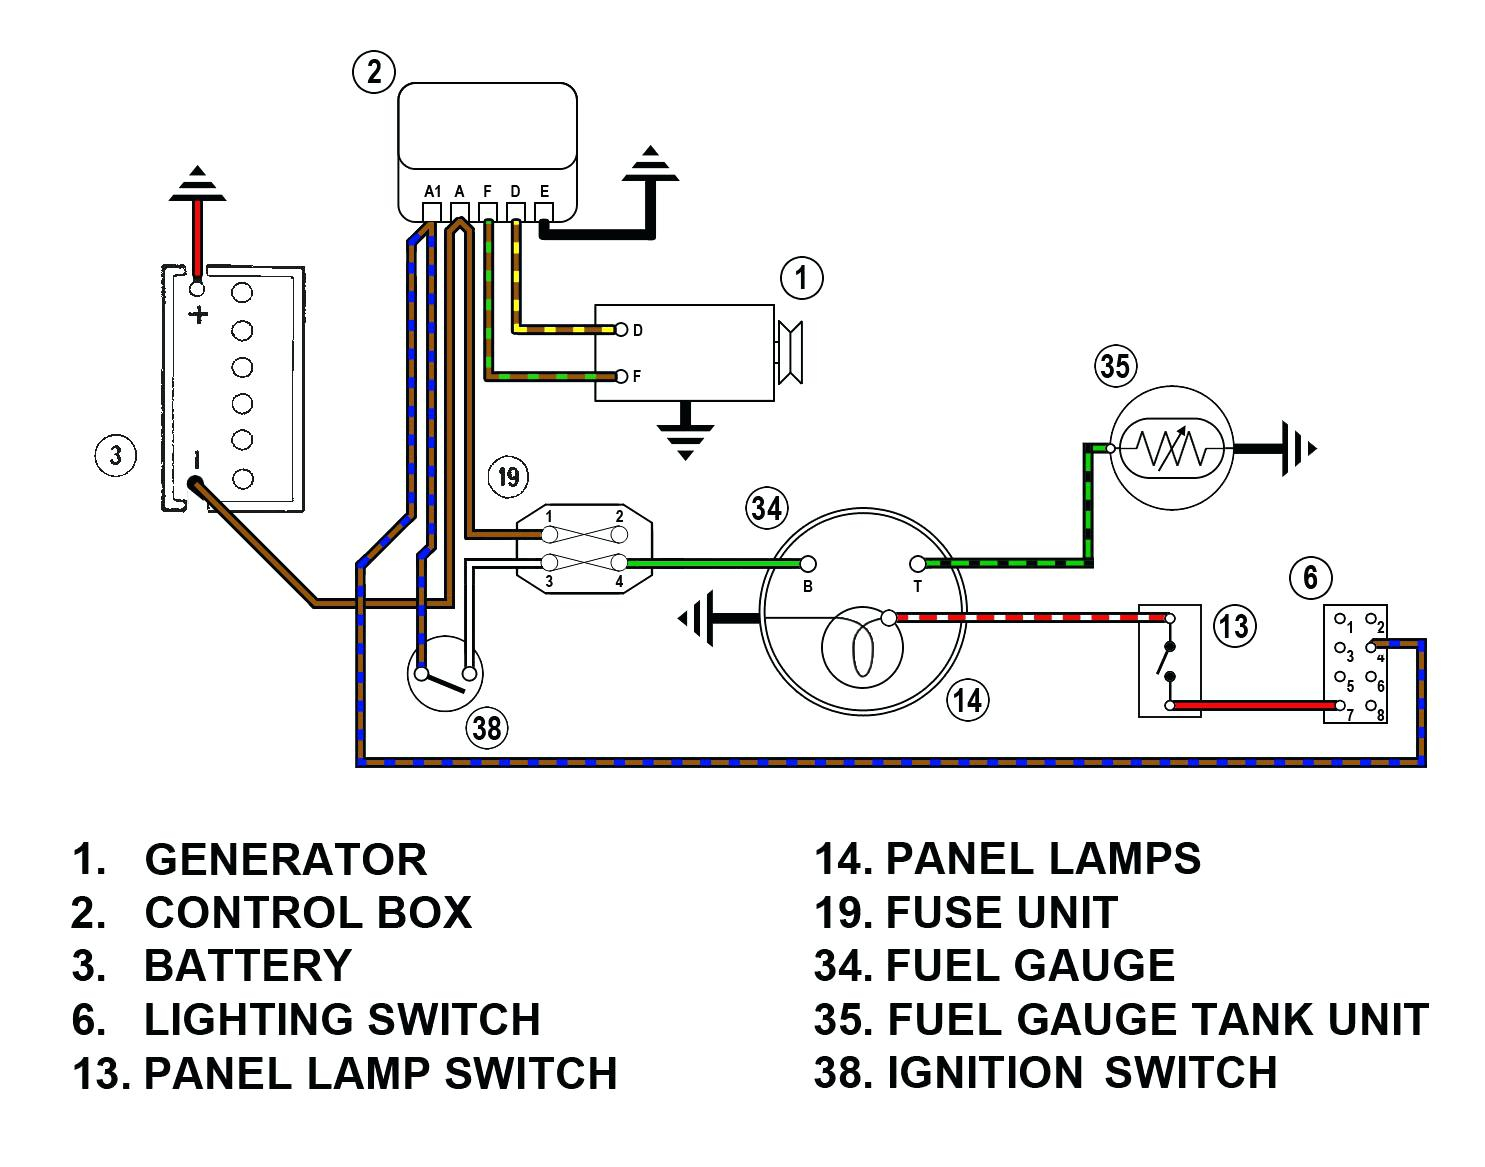 duplex pump control panel wiring diagram Download-Duplex Pump Control Panel Wiring Diagram Inspirational Dump Trailer Wiring Diagram Hydraulic Pump 4 Wire Troubleshooting 11-n